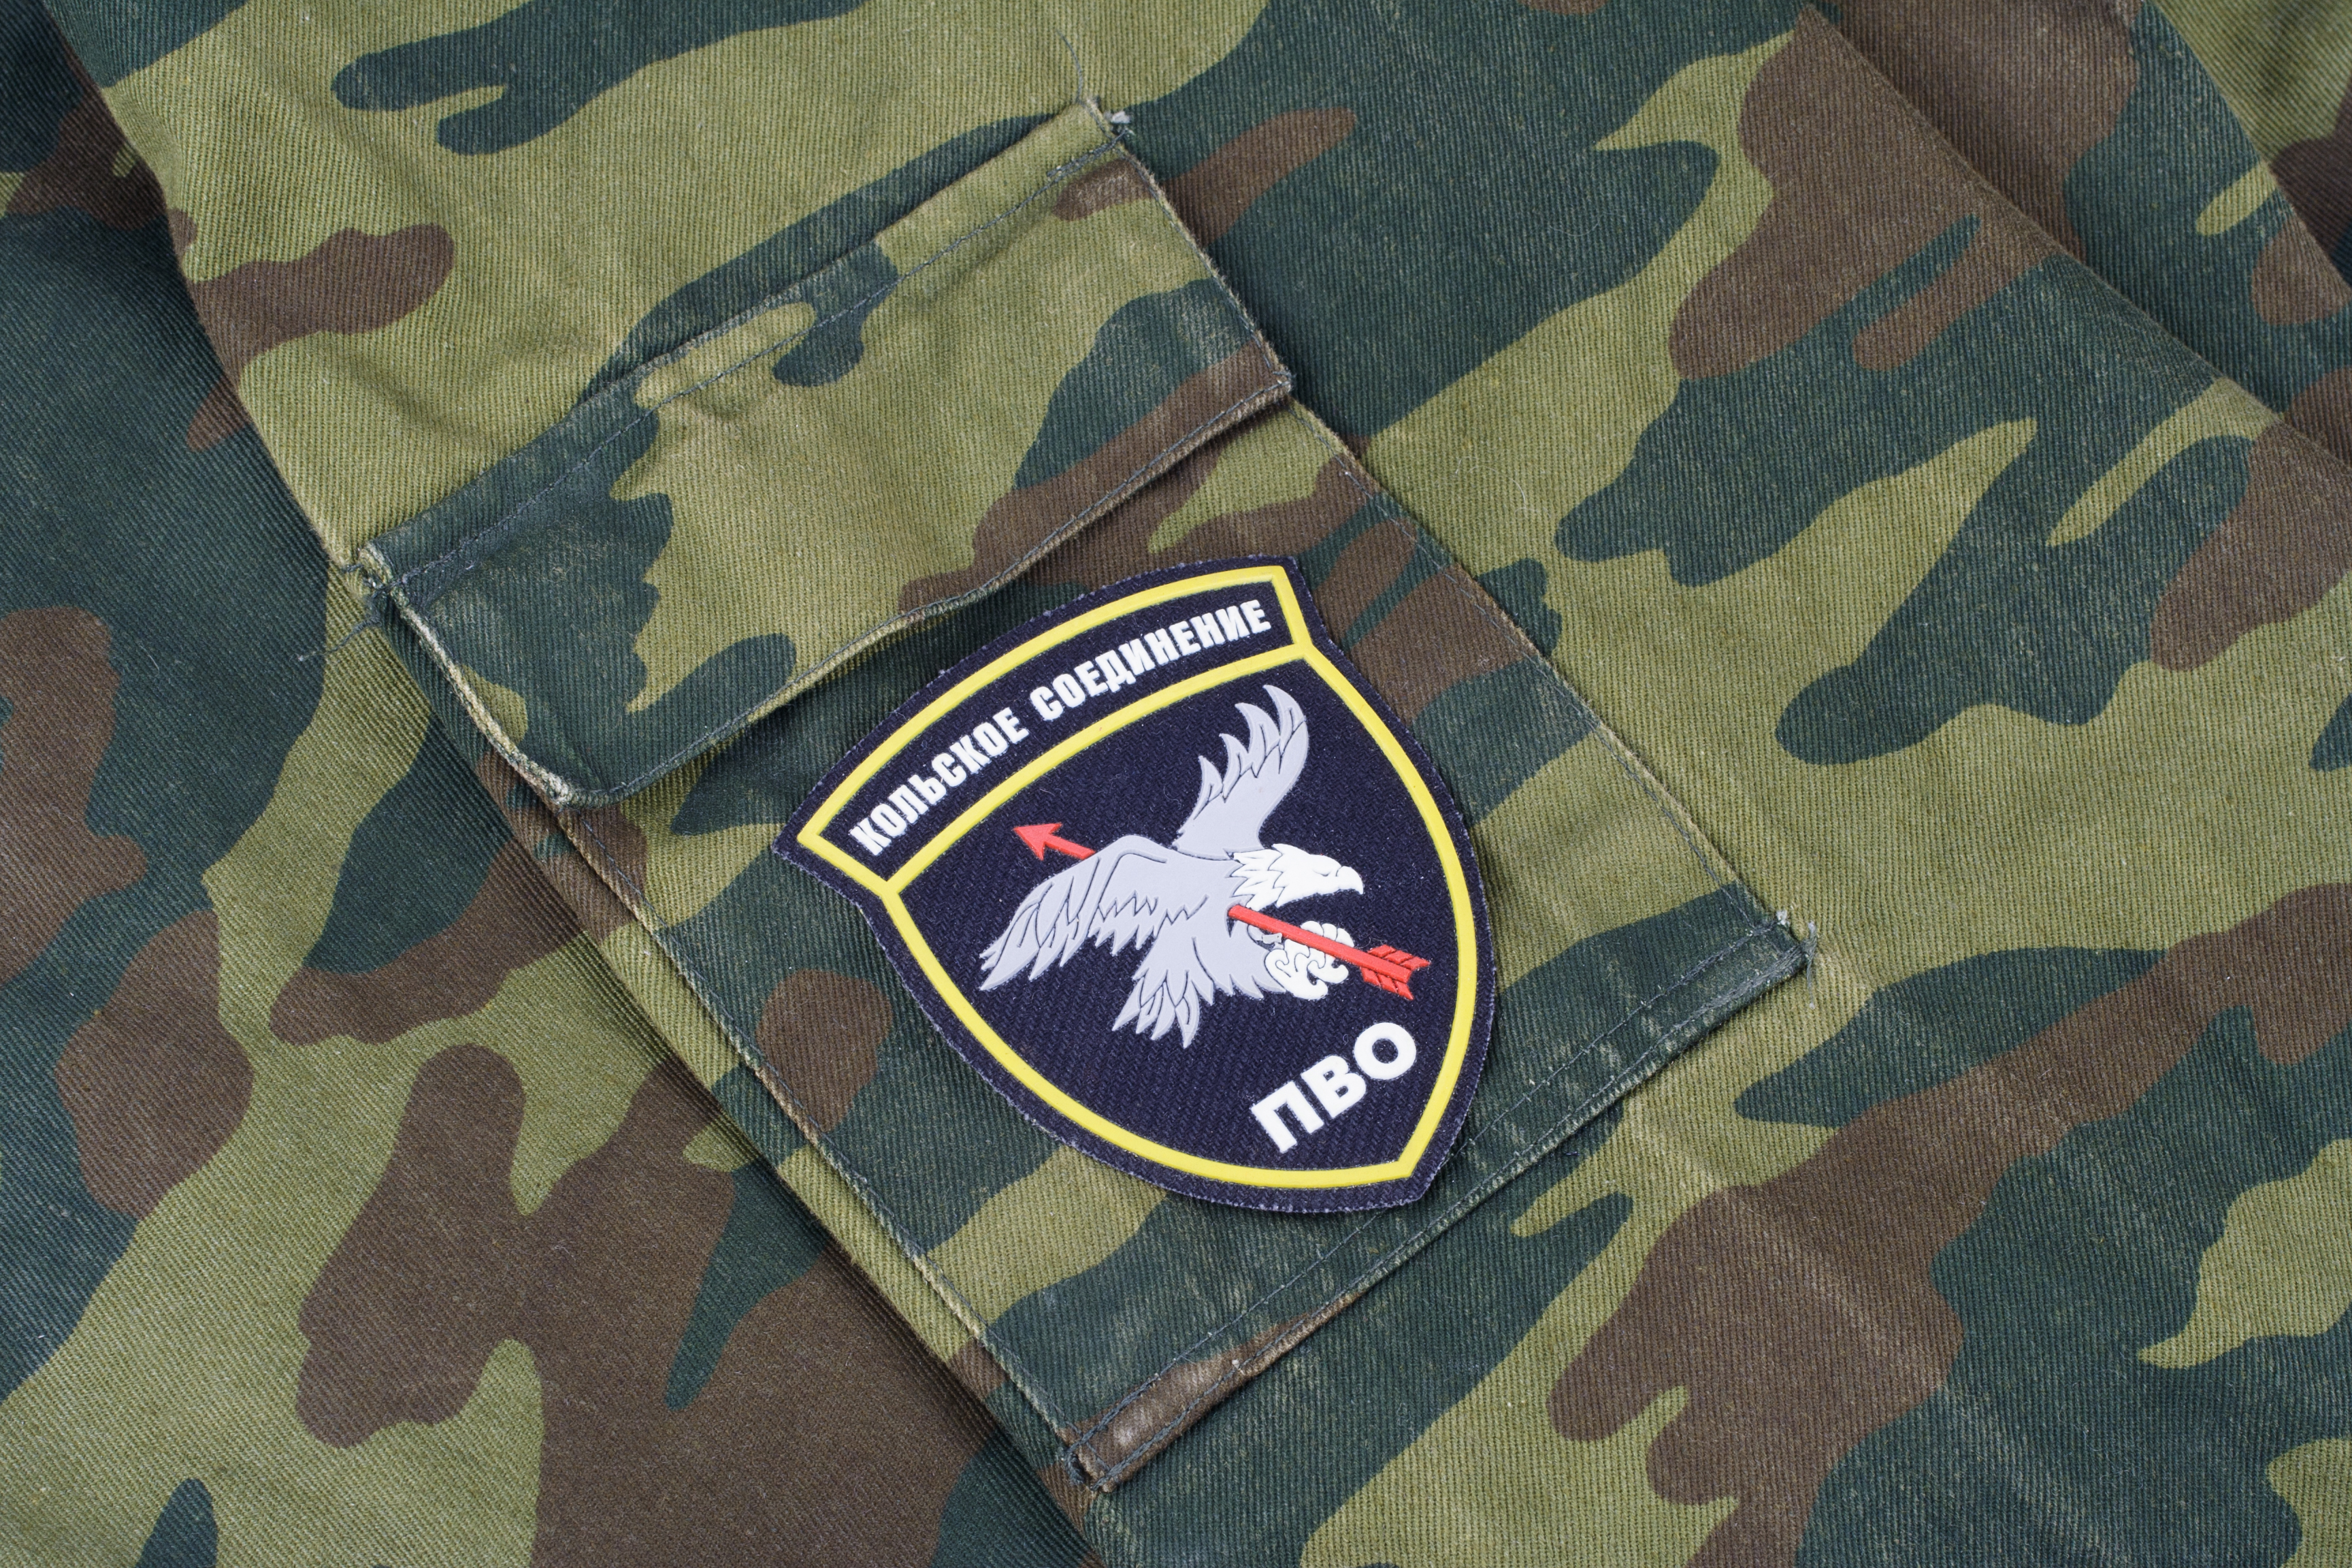 Bespoke military clothing